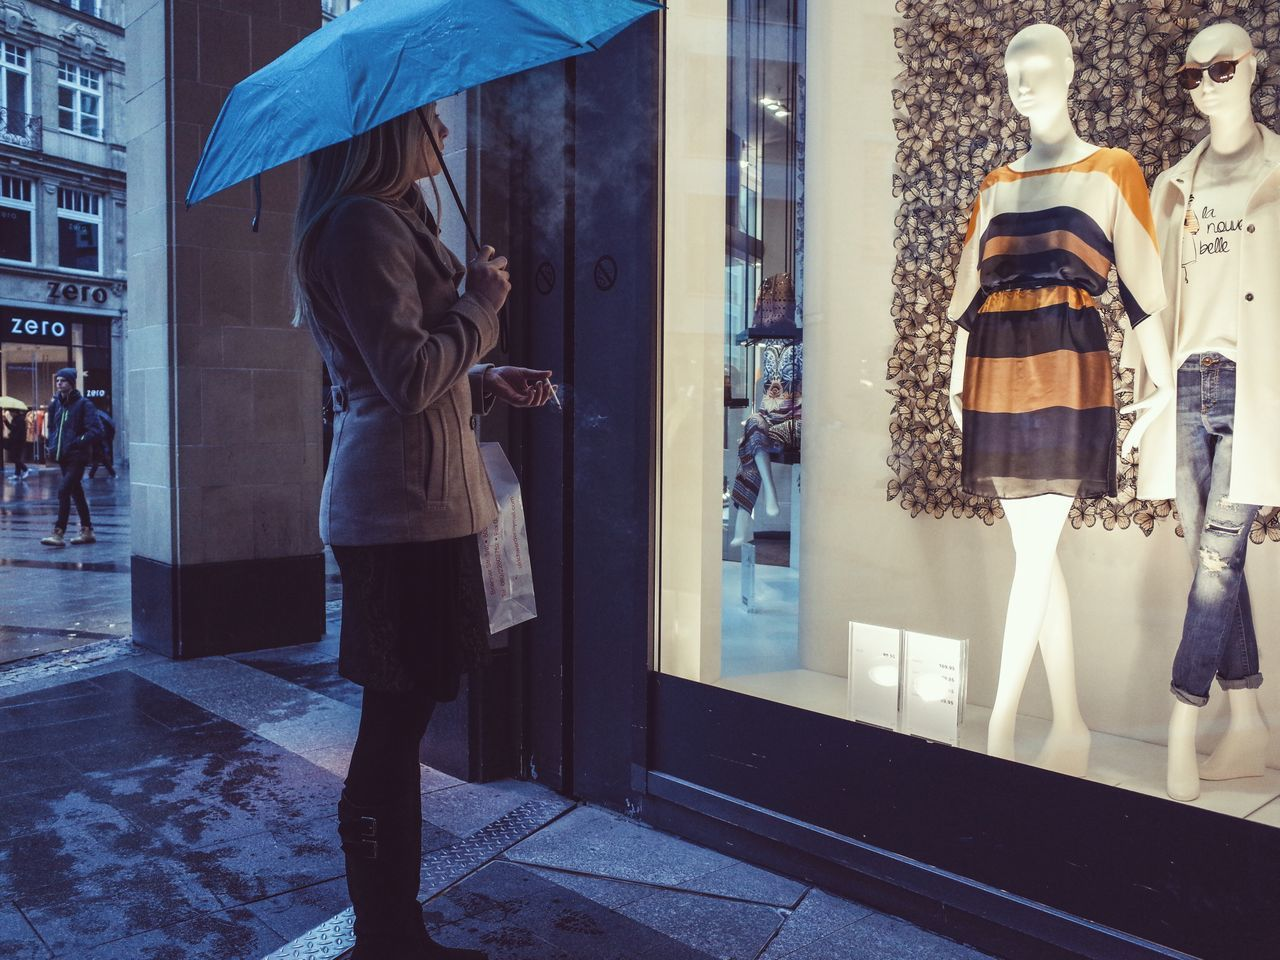 retail, window, rear view, store, store window, real people, for sale, lifestyles, hanging, women, day, full length, one person, outdoors